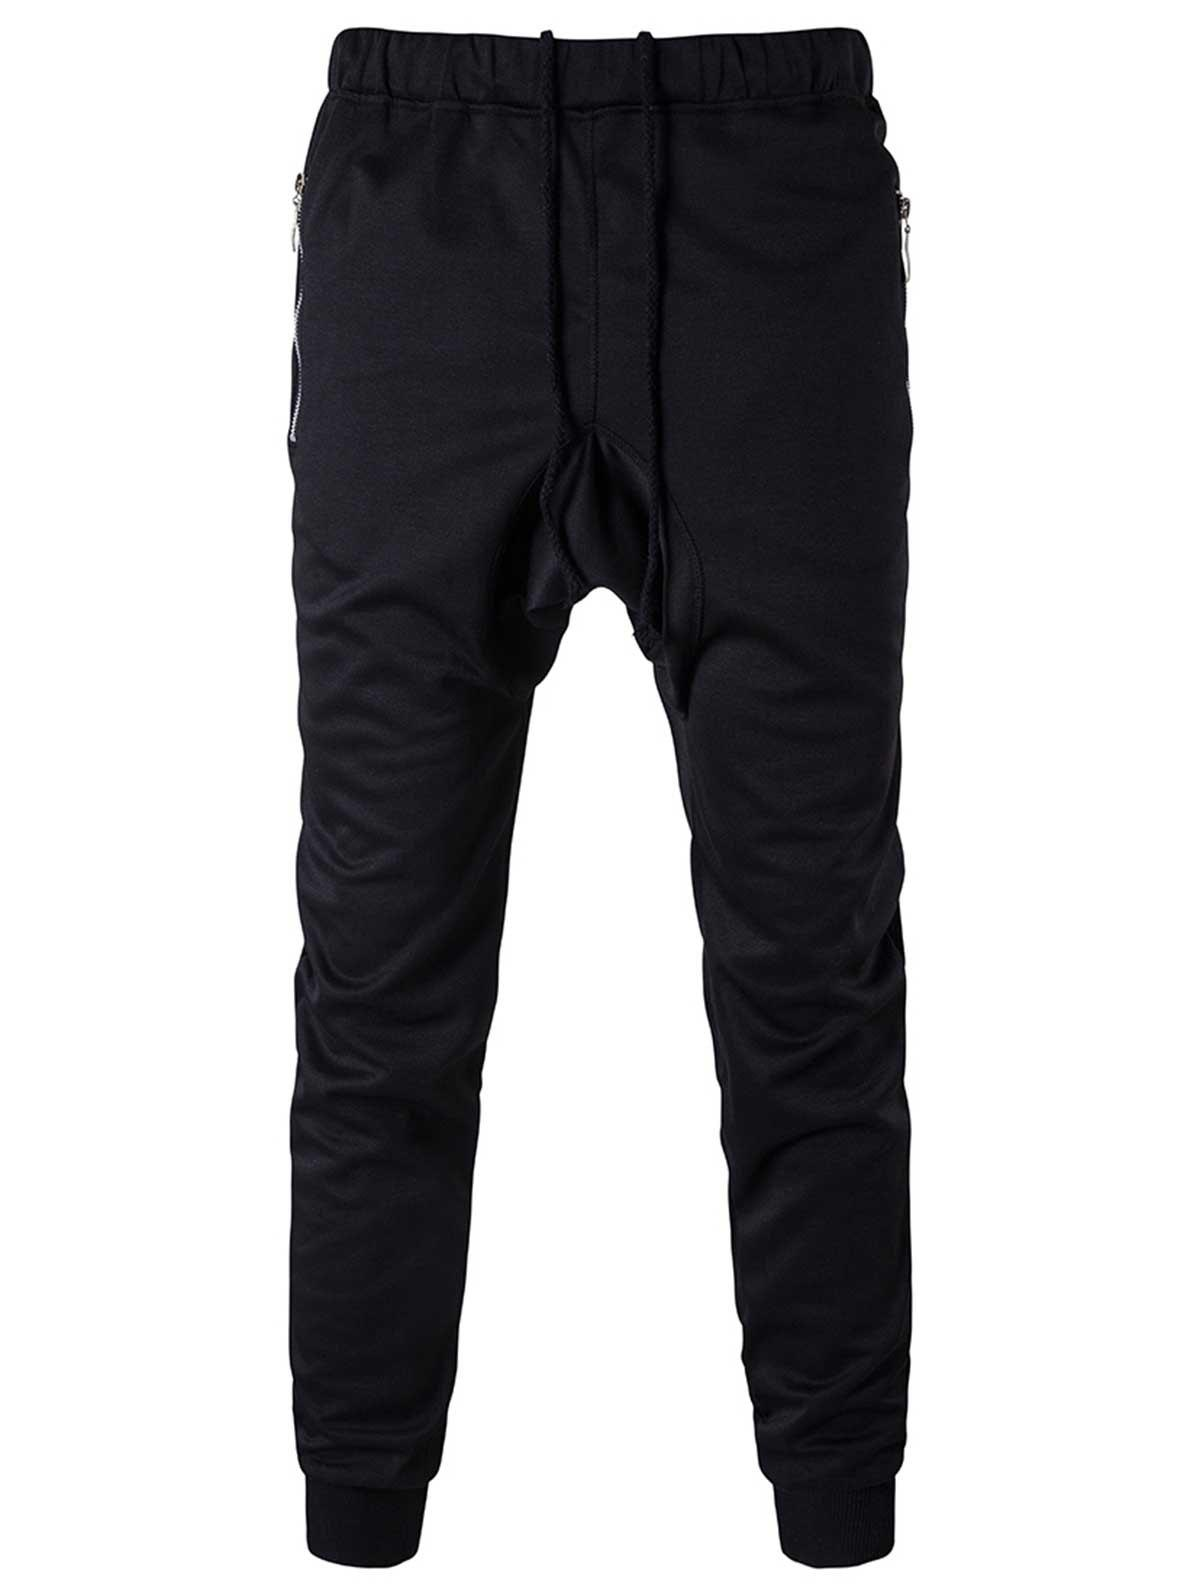 Zipper Pocket Drop Crotch Drawstring Jogger Pants single pocket back drop crotch wrap pants